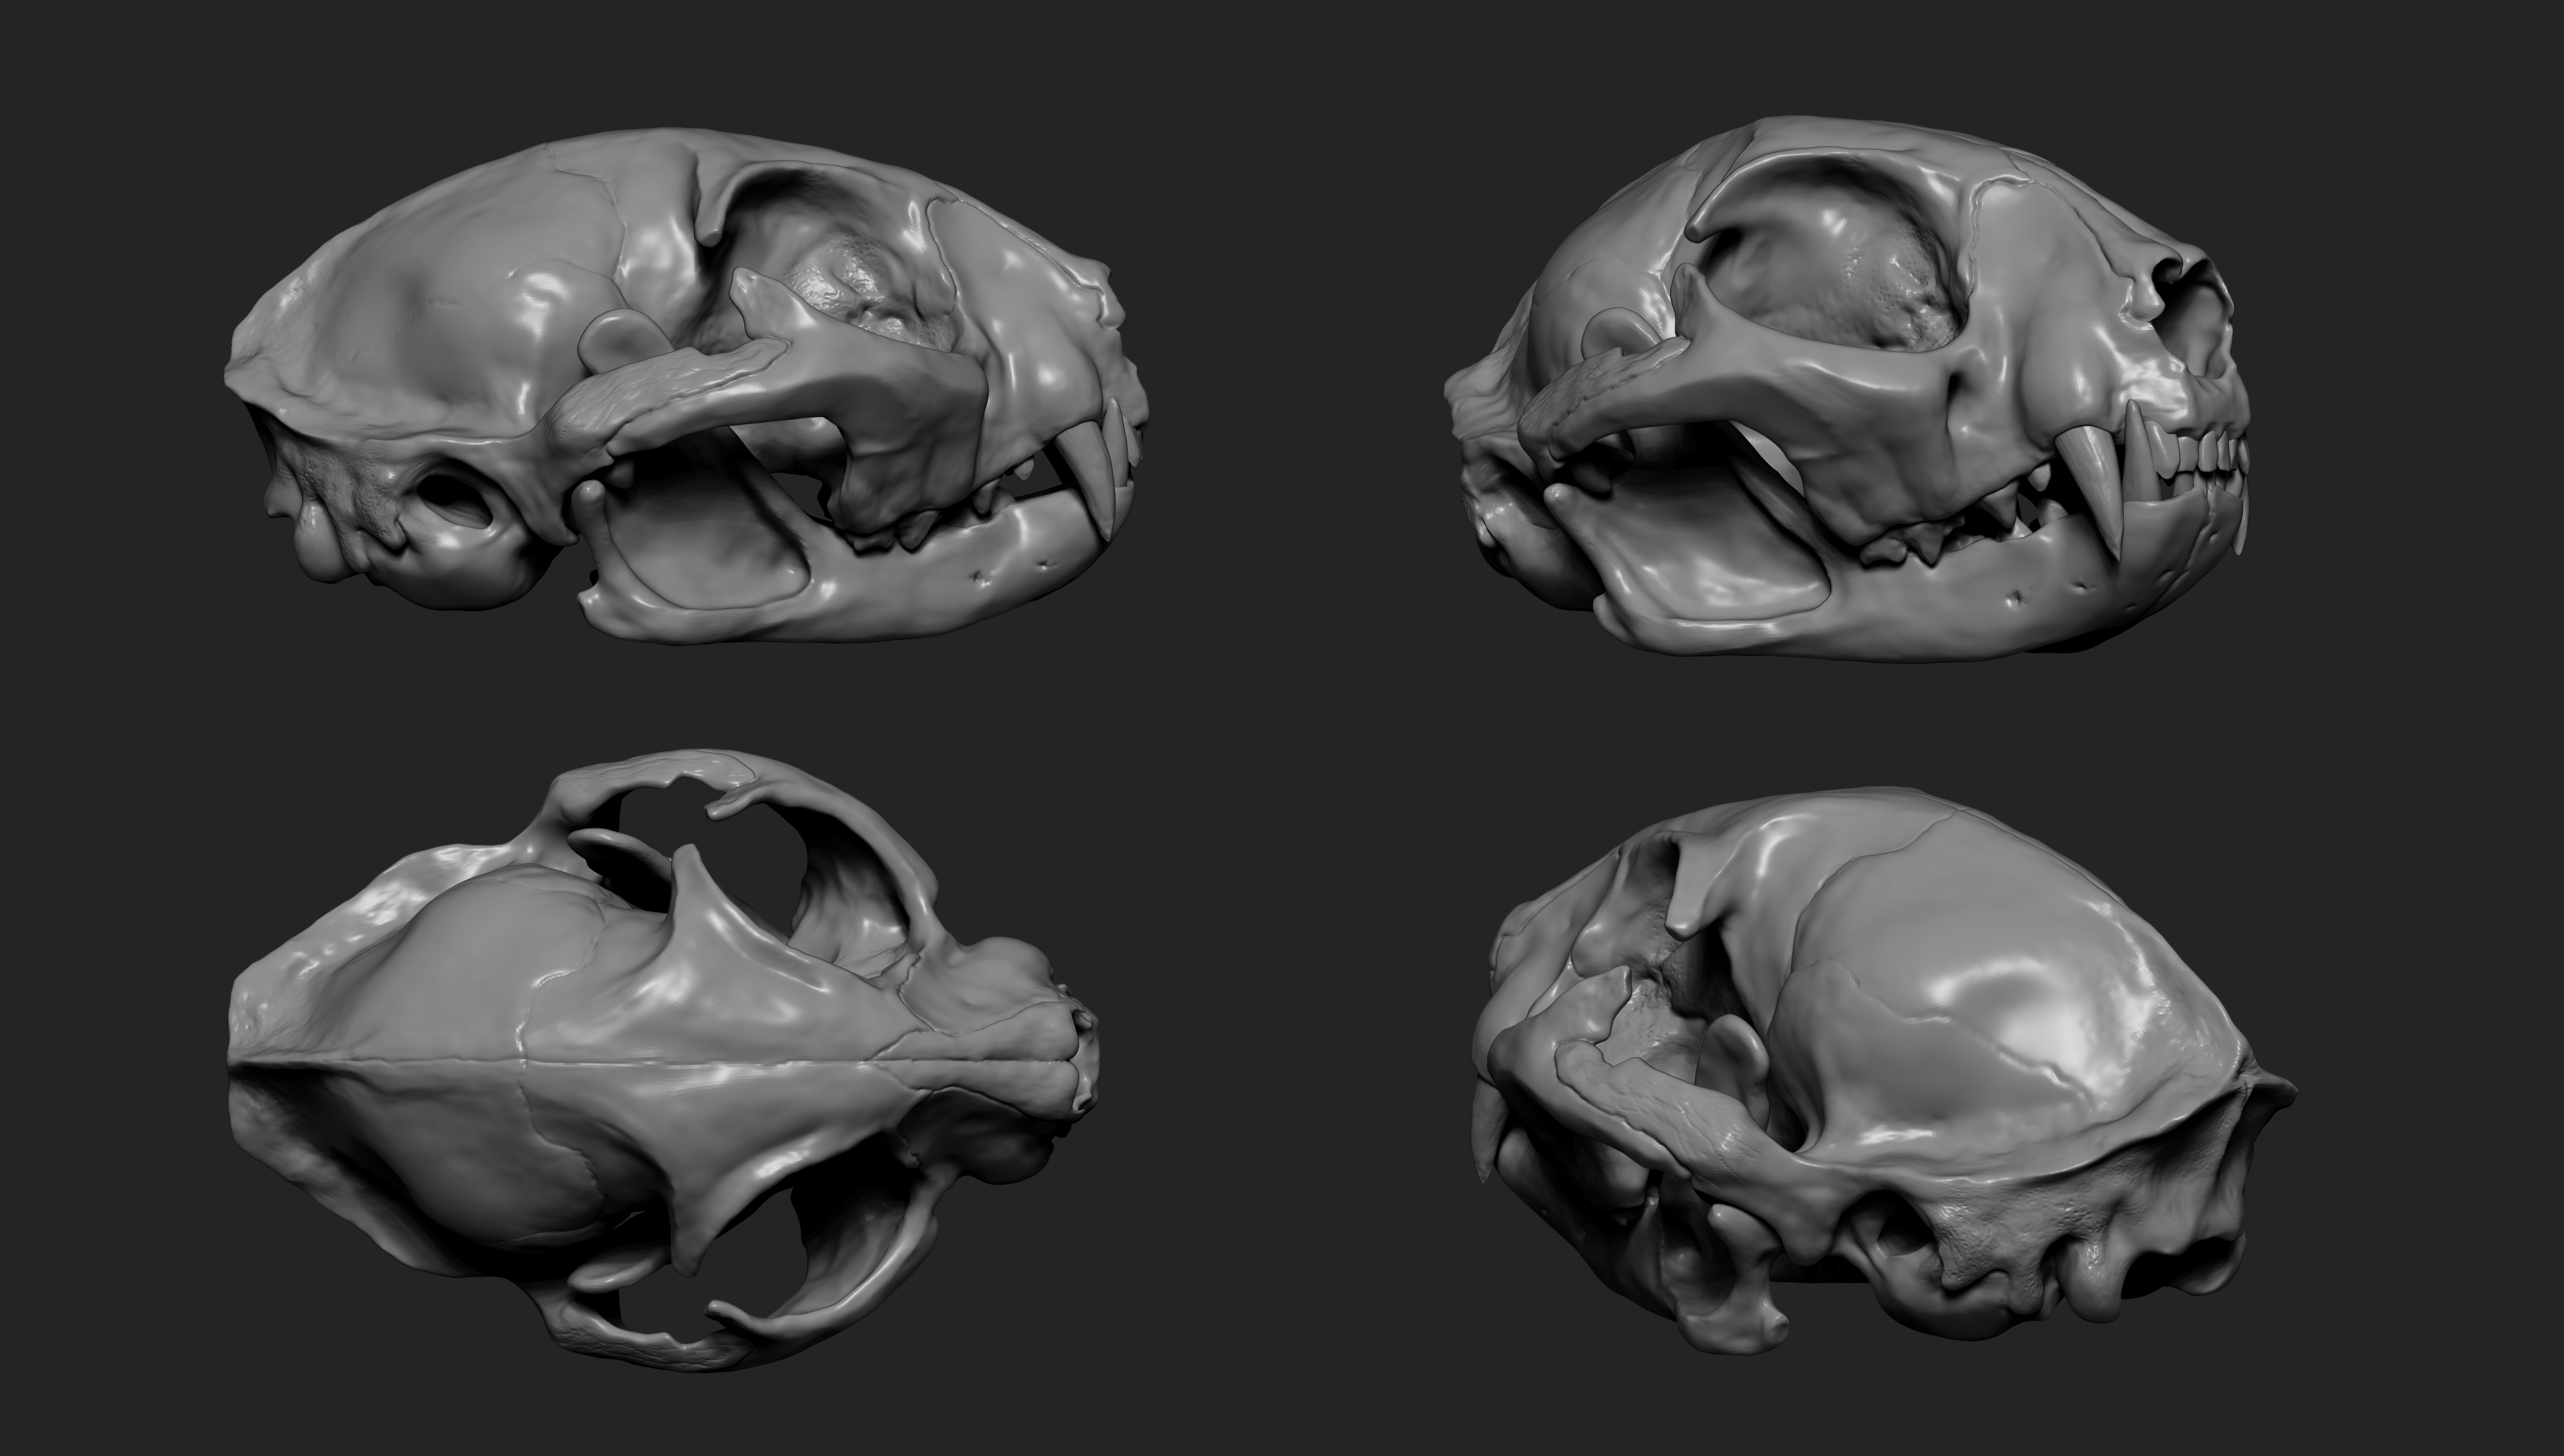 MarcusTrolldenier_SculptingAnatomy_week2_cat_skull_02.jpg